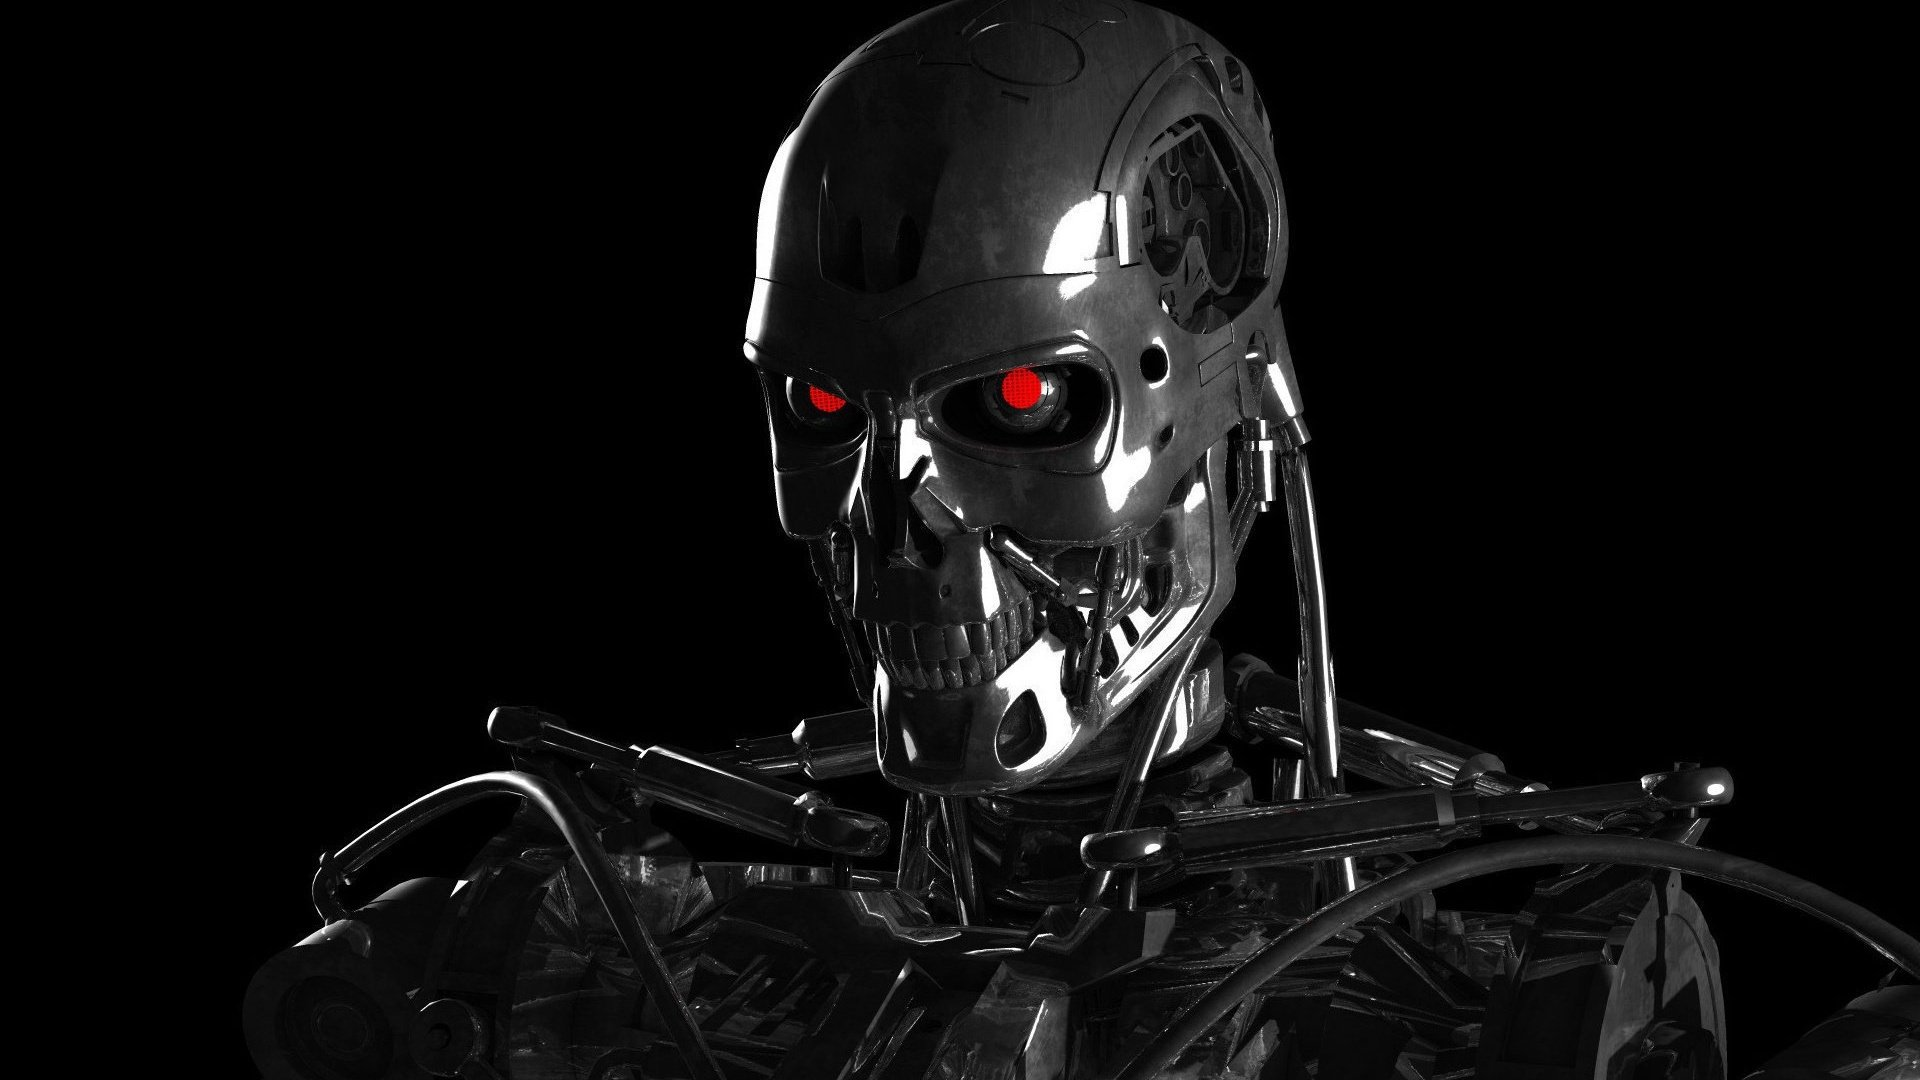 The terminator wallpapers pictures images - Terminator 2 wallpaper hd ...